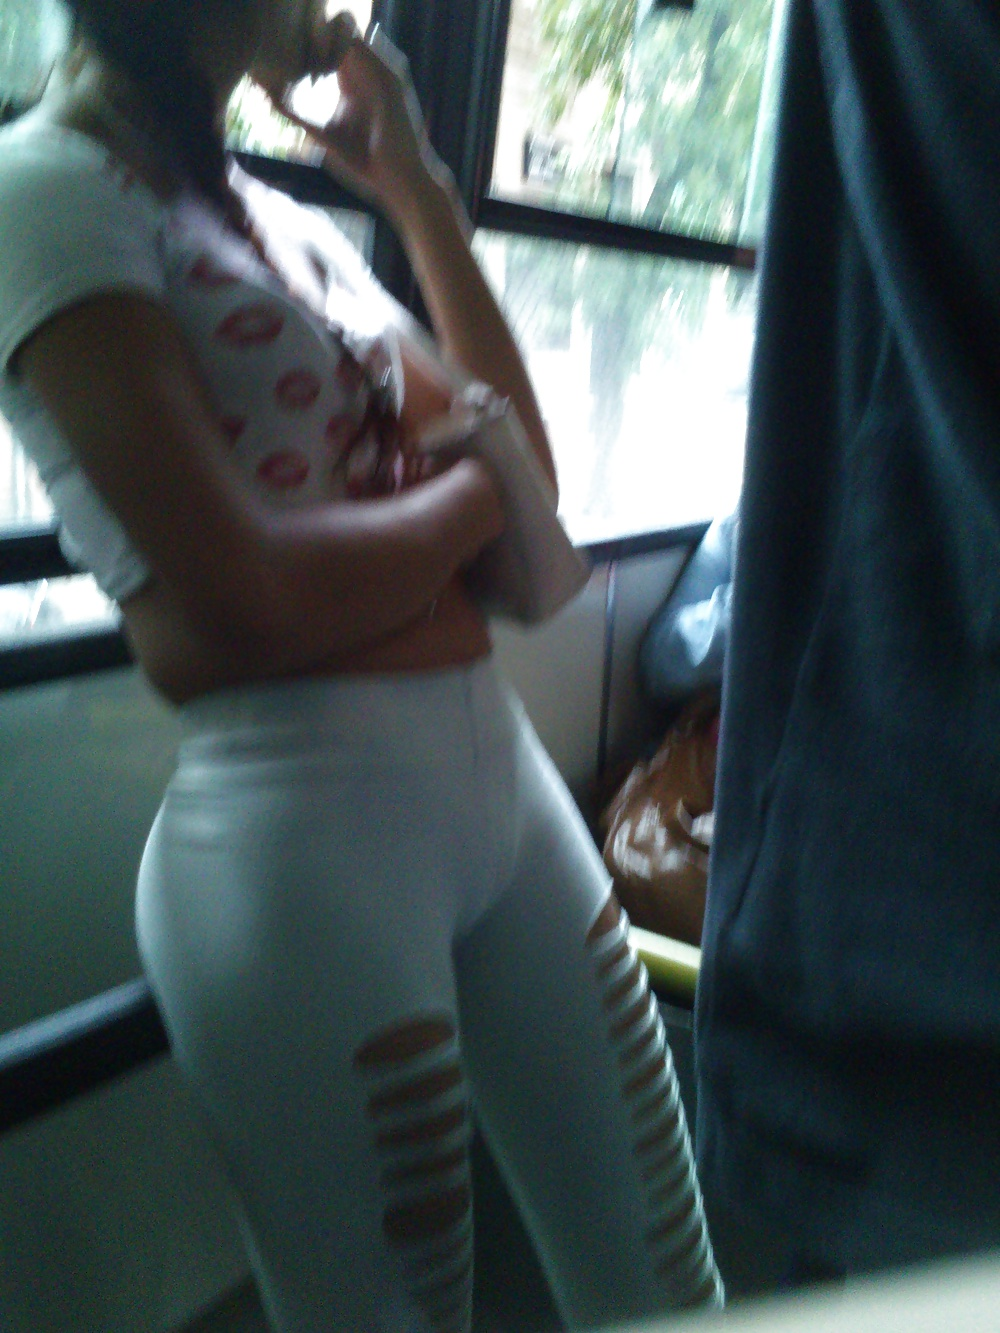 Omg - Huge Cameltoe - Argentinian Teen In The Bus - 18 -7495